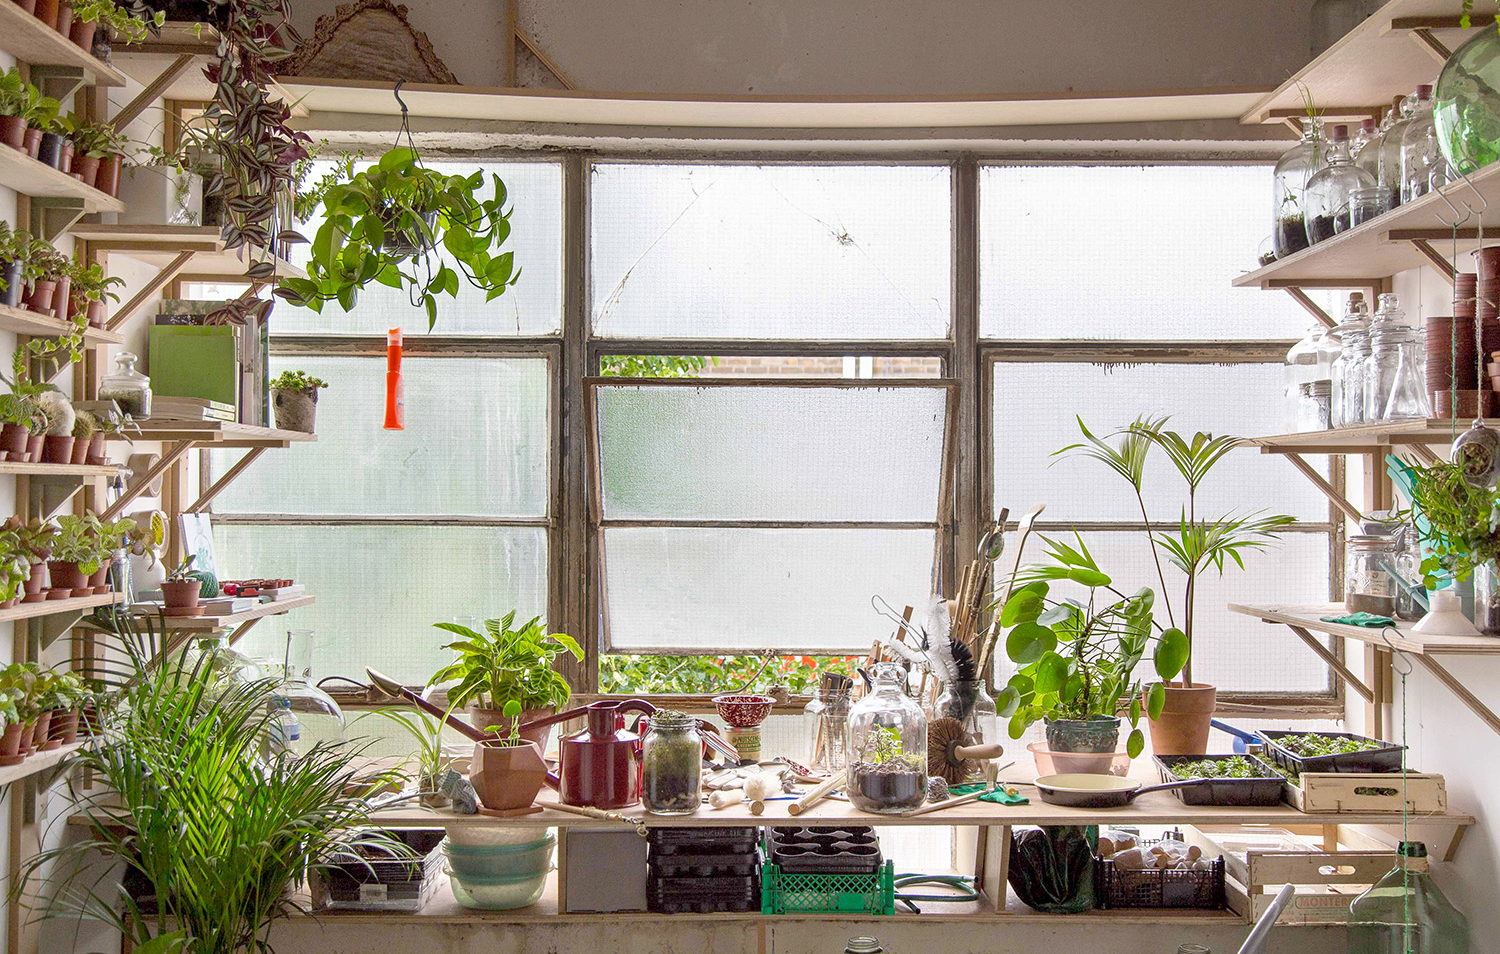 Designer Sofas And Curtains Tottenham Court Road In The Studio London Terrariums Heal 39s Blog